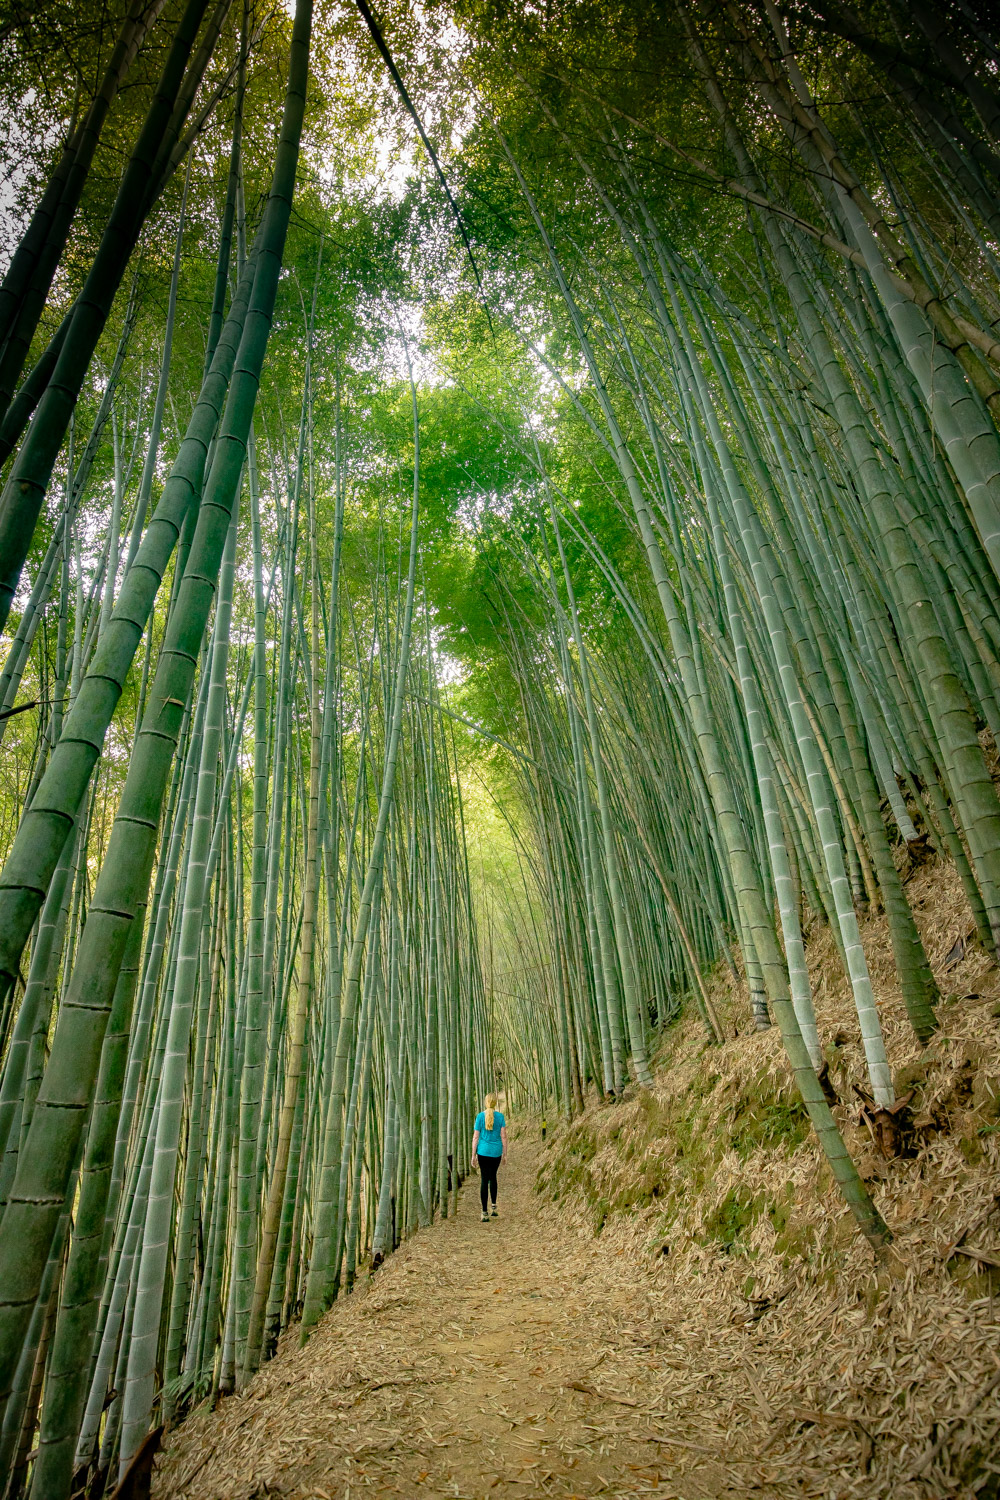 The forest of forgetting sorrow - Fenrui Historic Trail